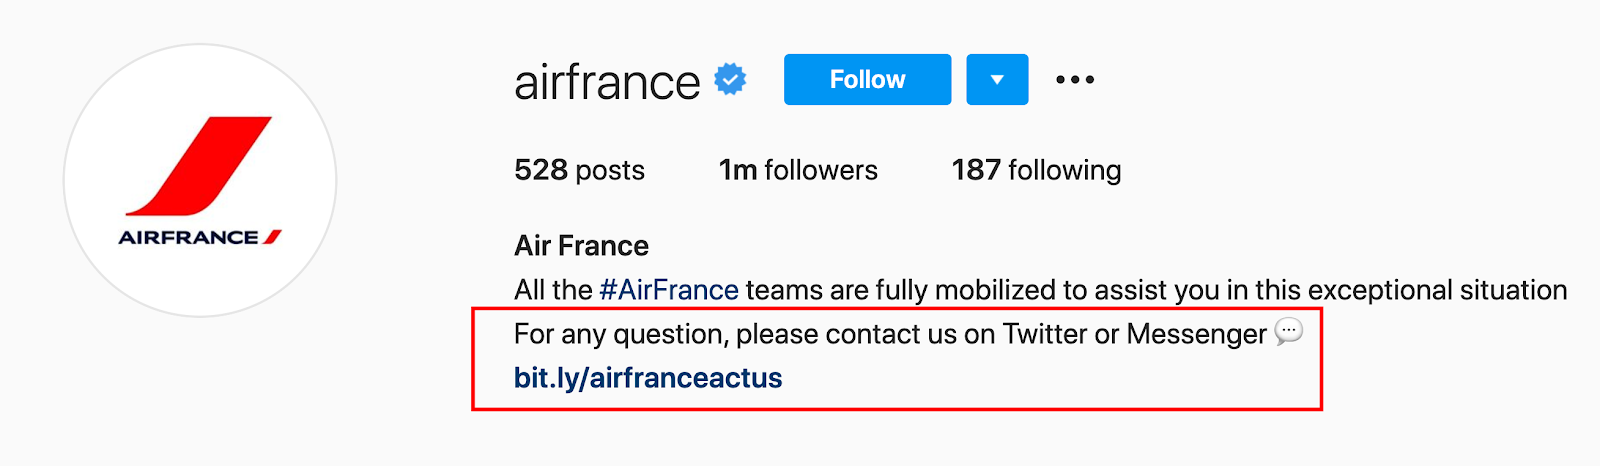 Best Ways to Engage With Your Instagram Audience | Air France | Agency Vista